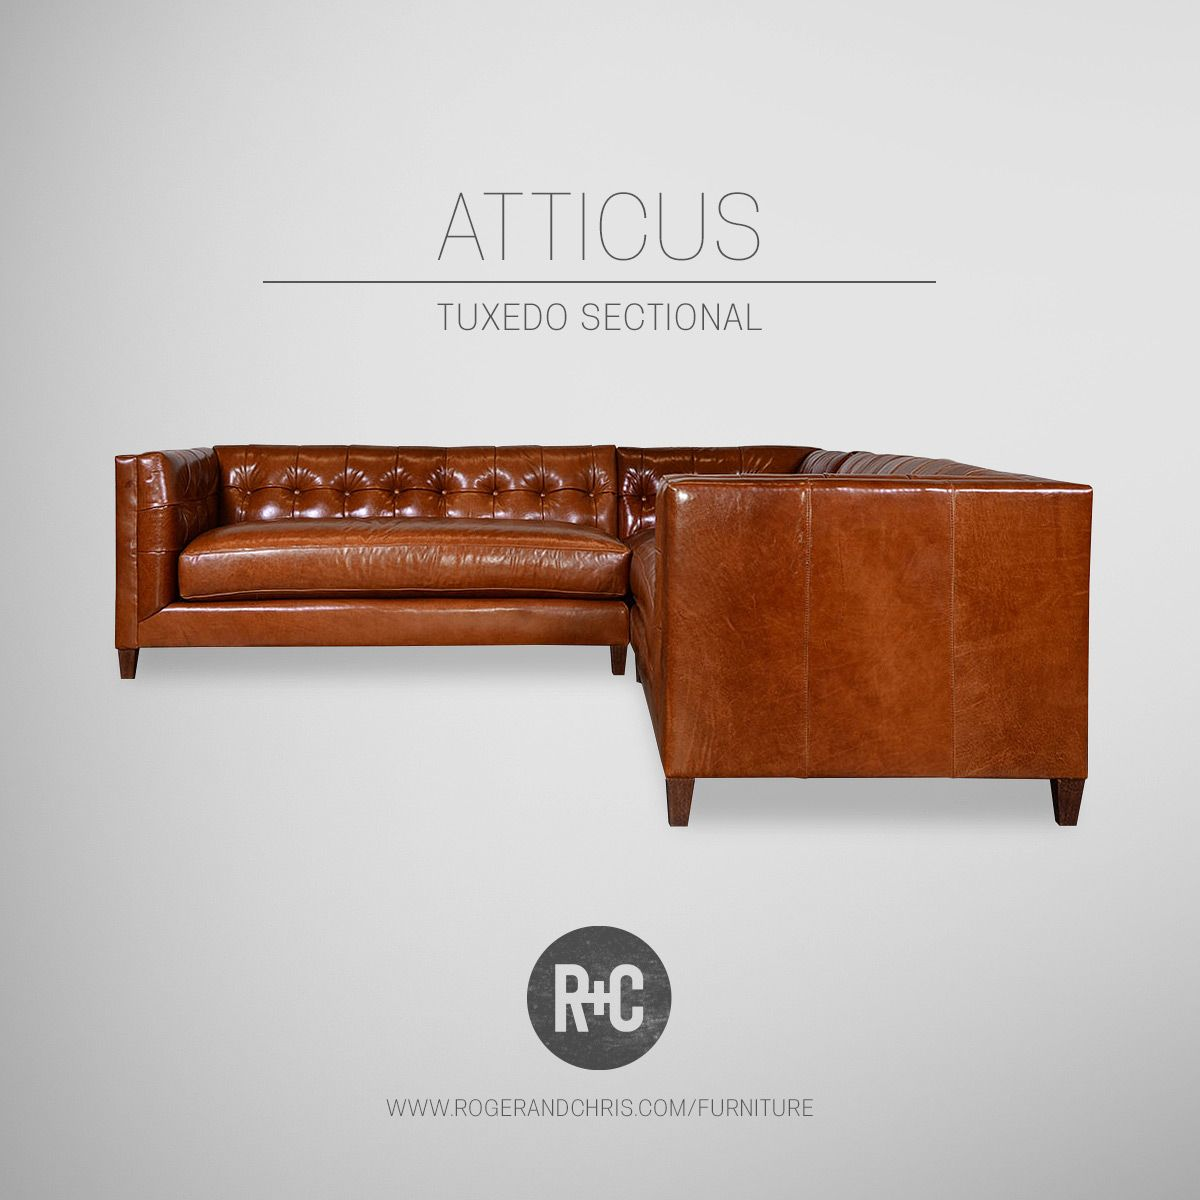 Our Atticus Is A Mid Century Modern Tuxedo Sofa Now Available As A Sectional This Brown Home Design Living Room Leather Sectional Sofas Tufted Sectional Sofa